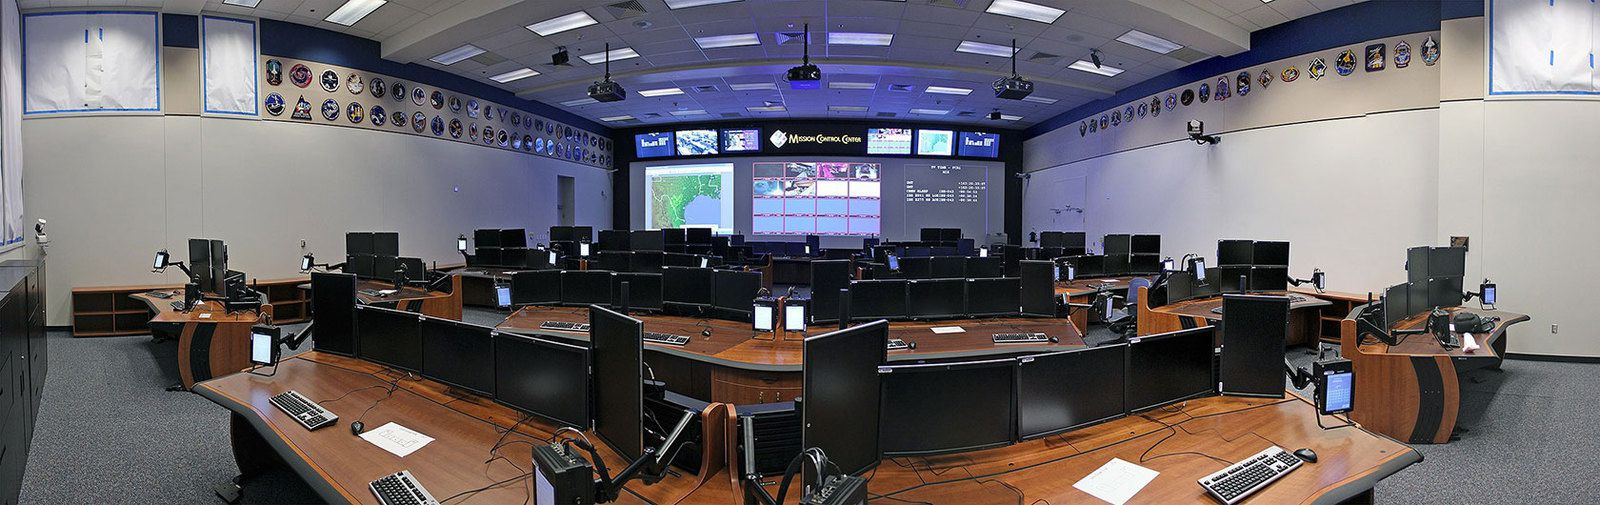 10 avril : Visite du Centre de Commande de Vol rénové pour Orion à Houston (Mission Control Center).